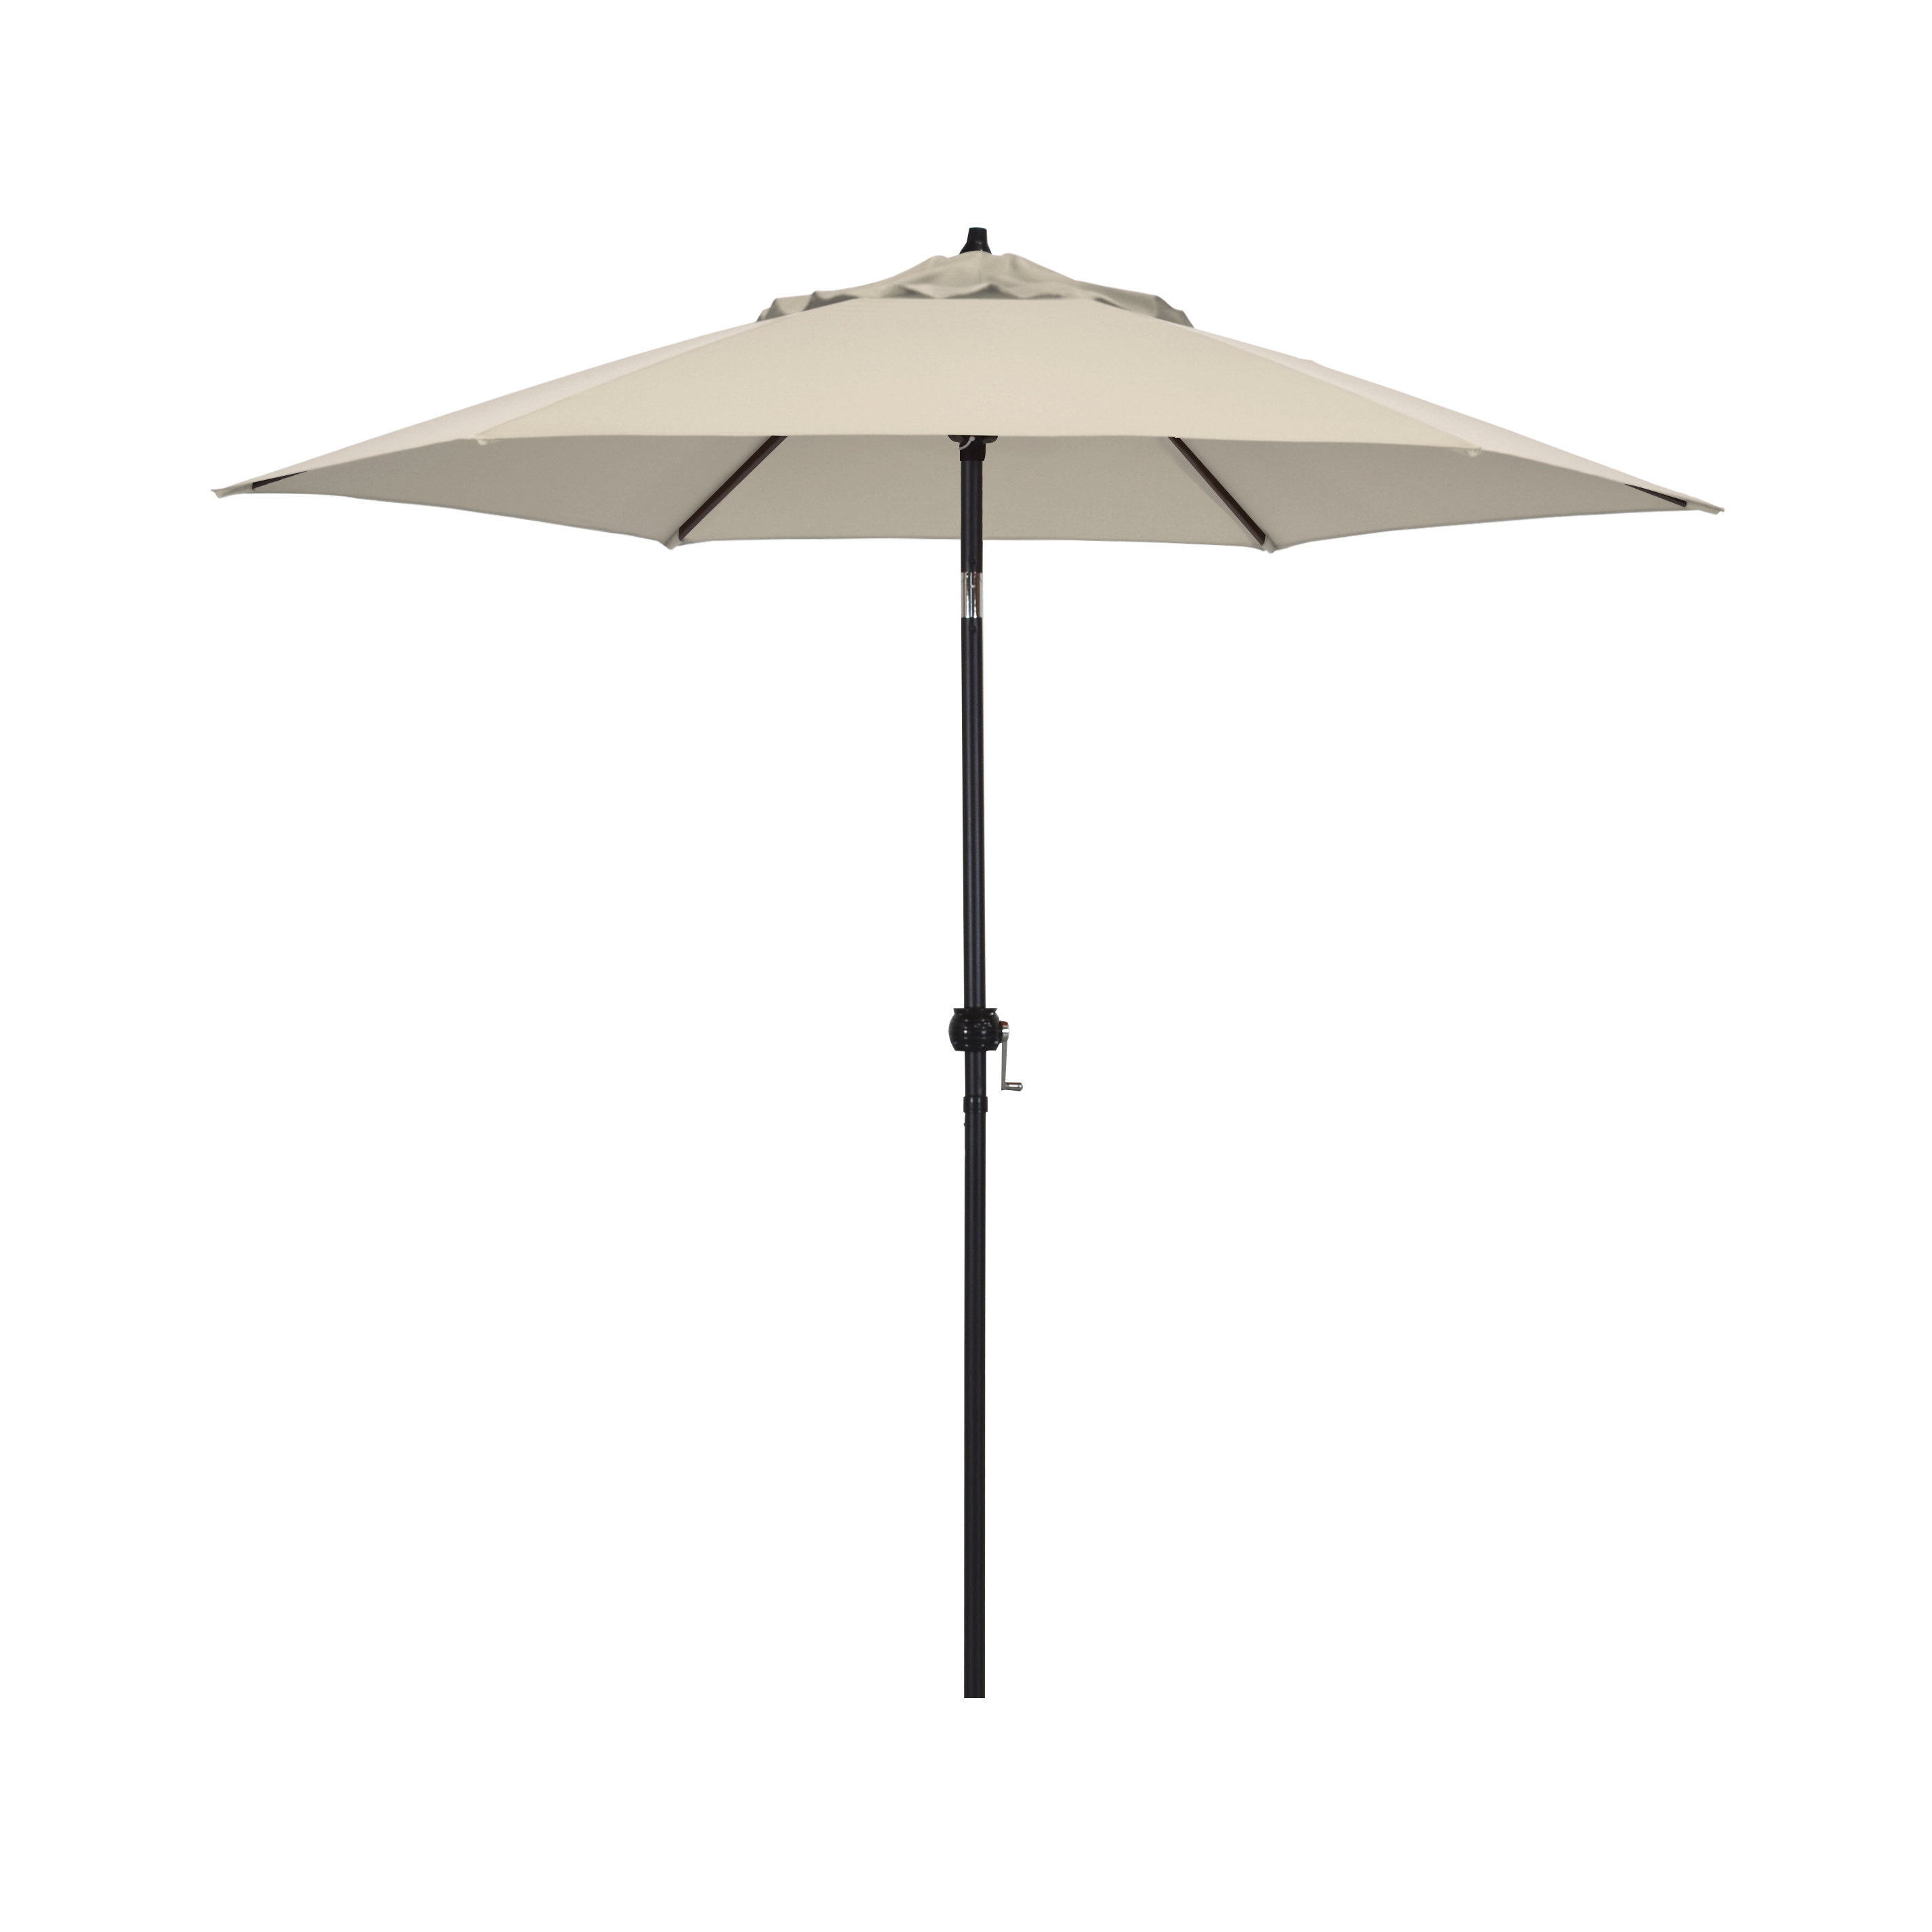 Kearney 9' Market Umbrella For Most Recently Released Ryant Market Umbrellas (View 10 of 20)